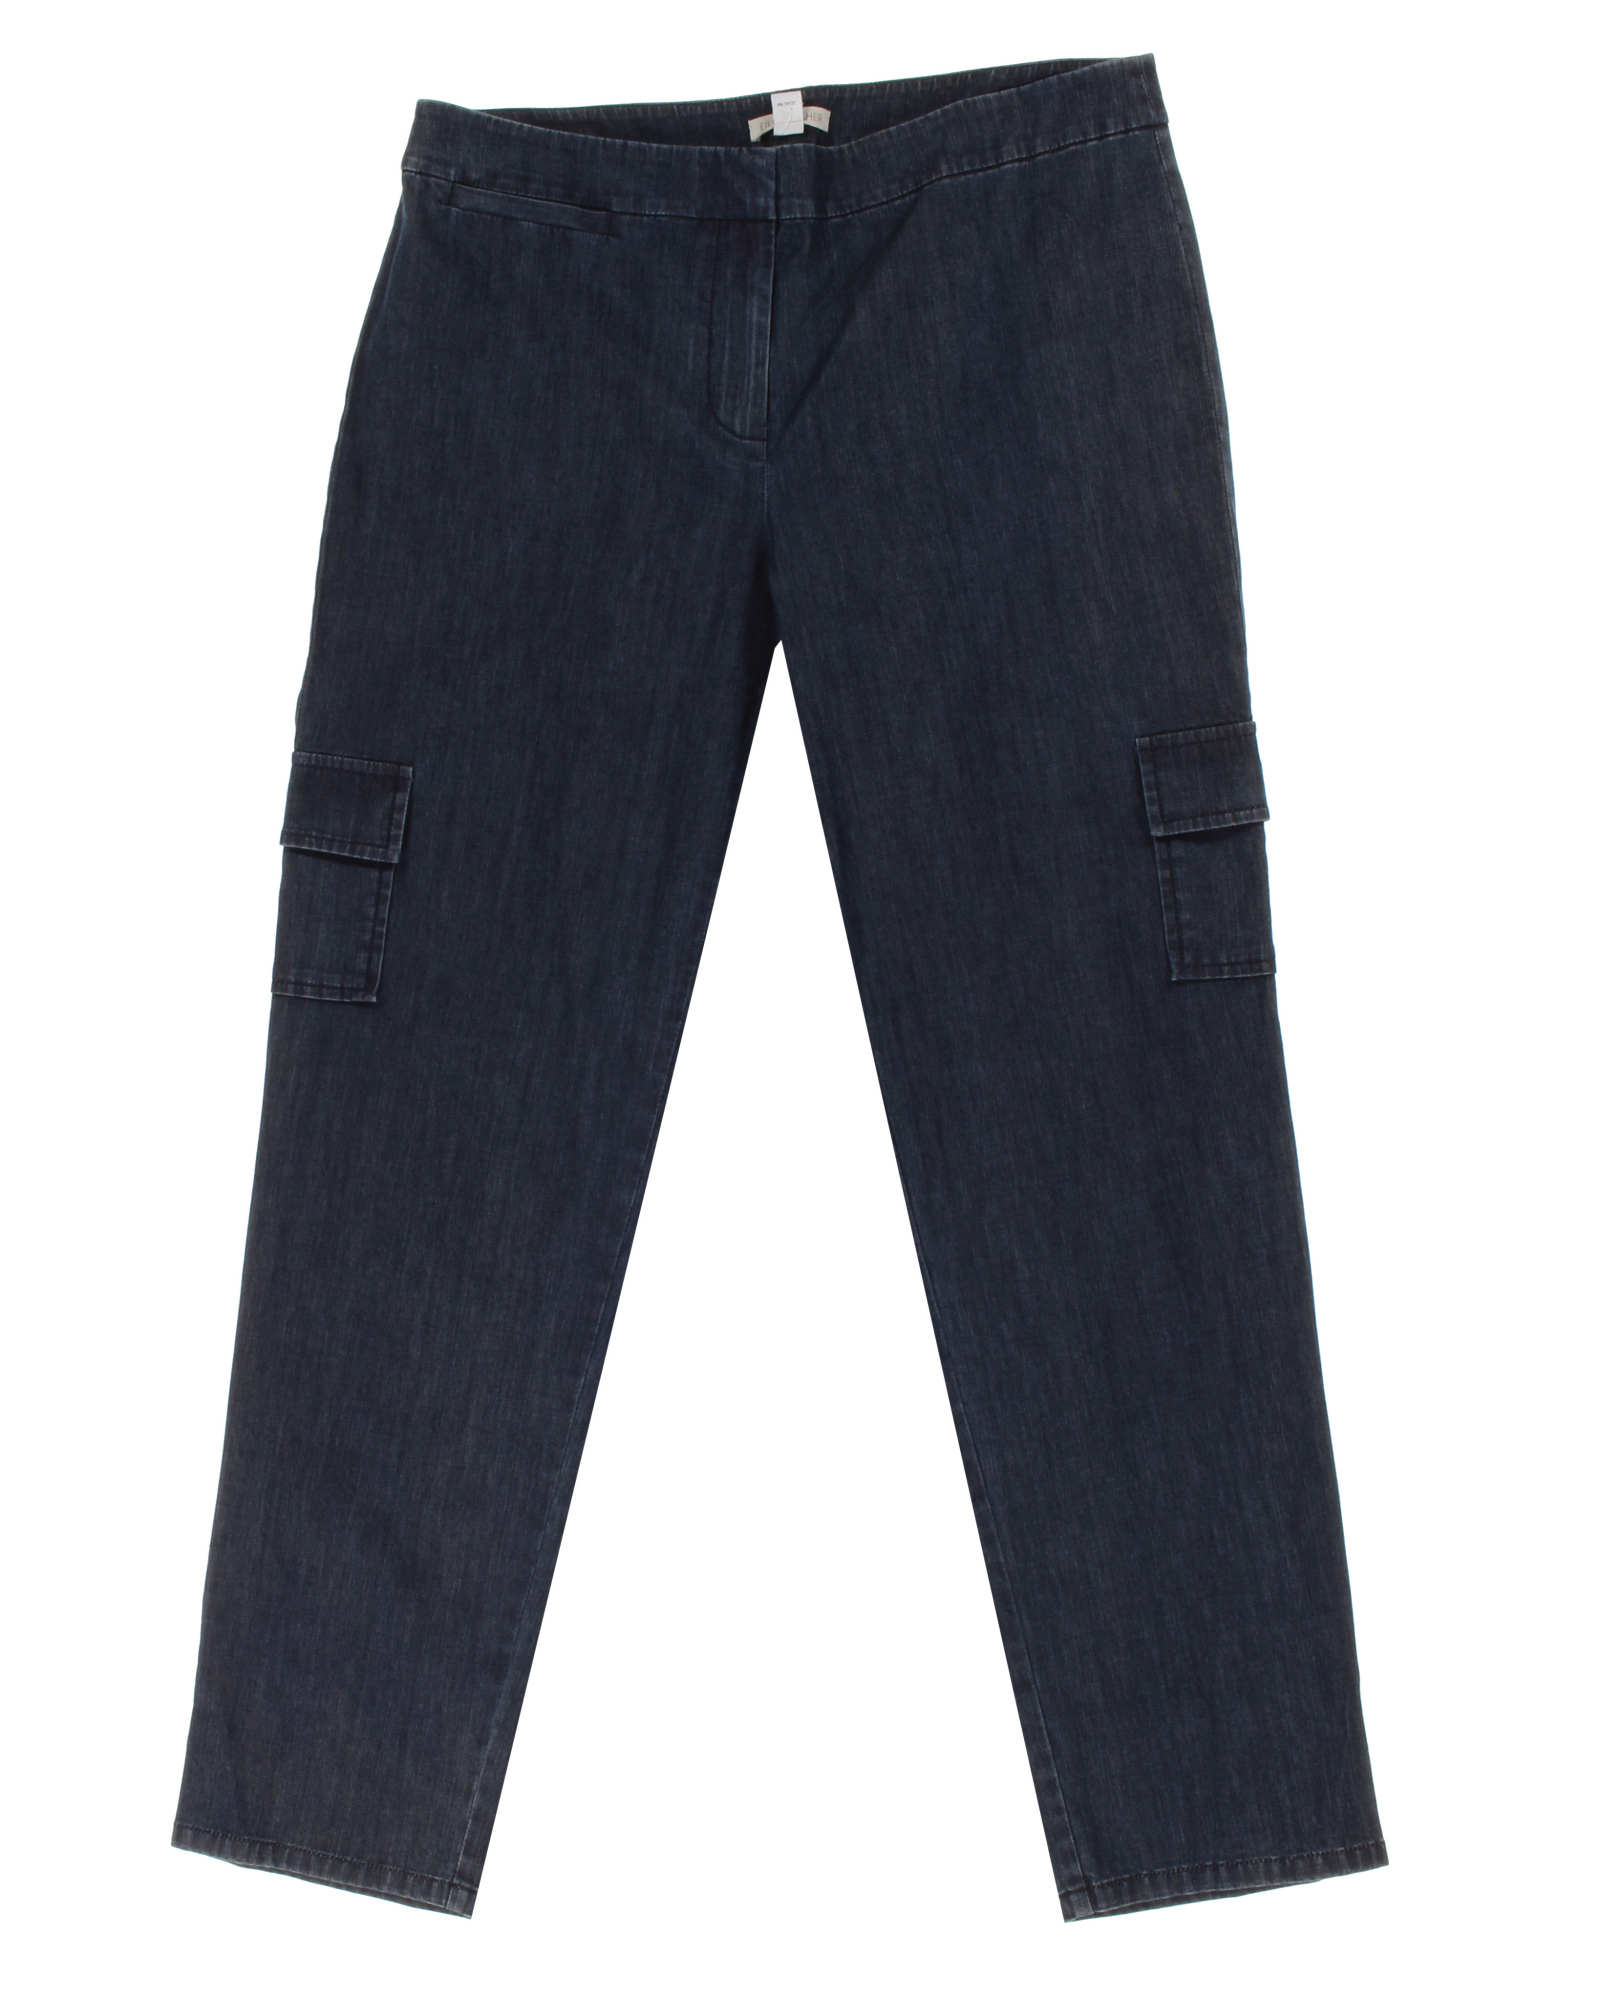 Viscose Pucker Pant